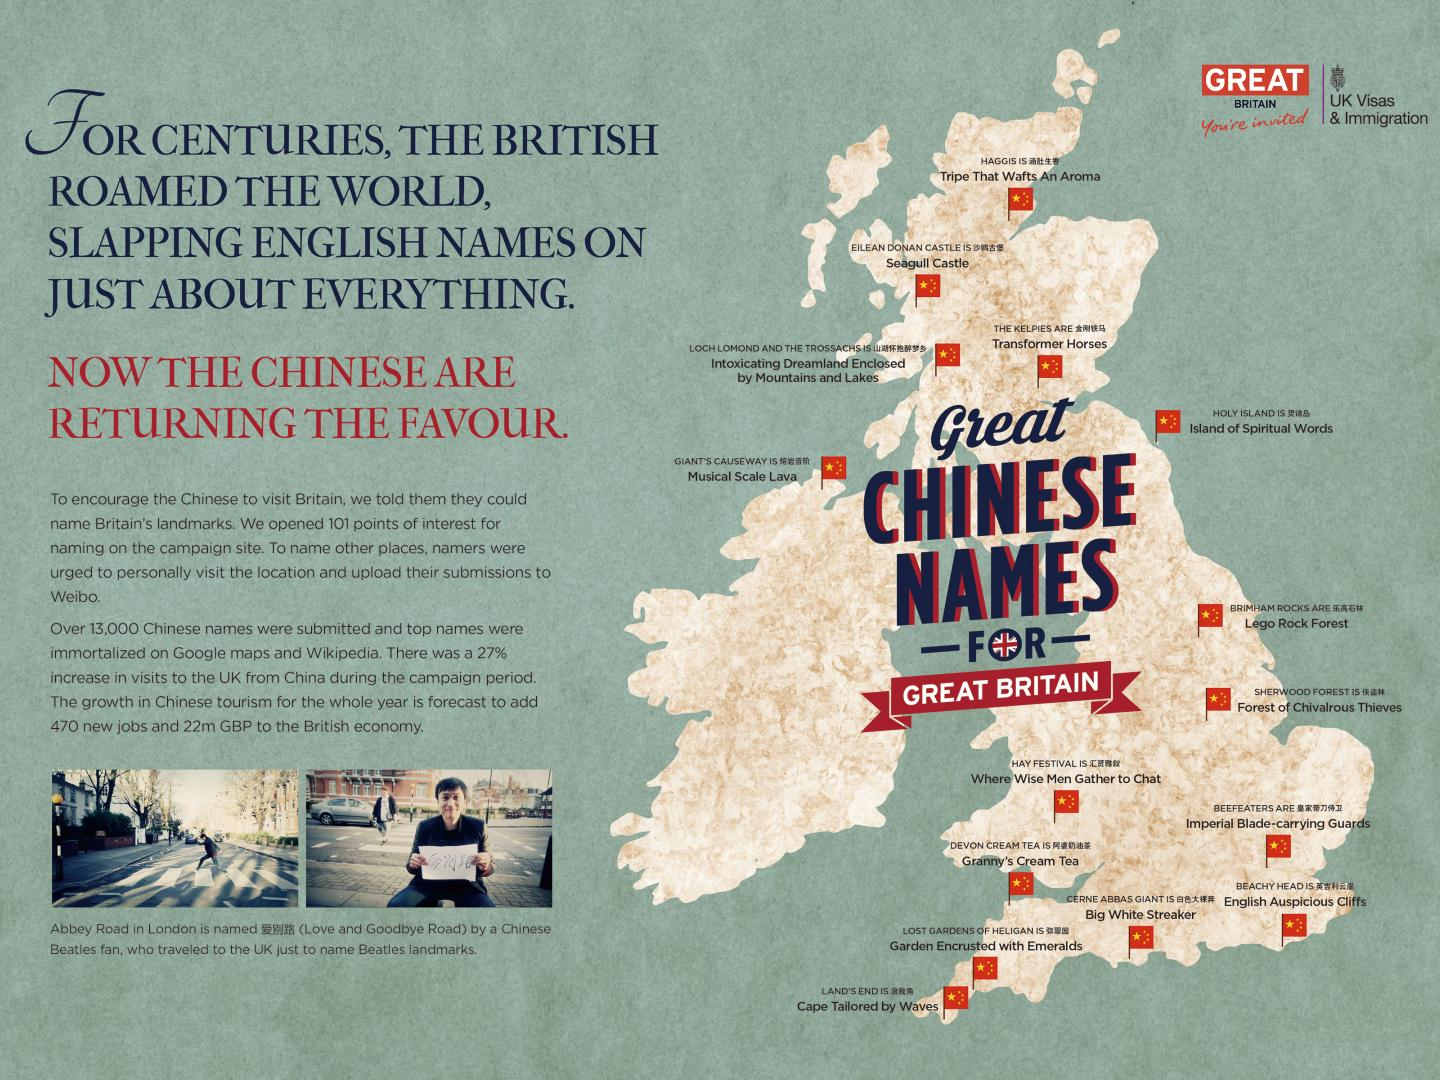 Great Chinese Names for Great Britain Thumbnail